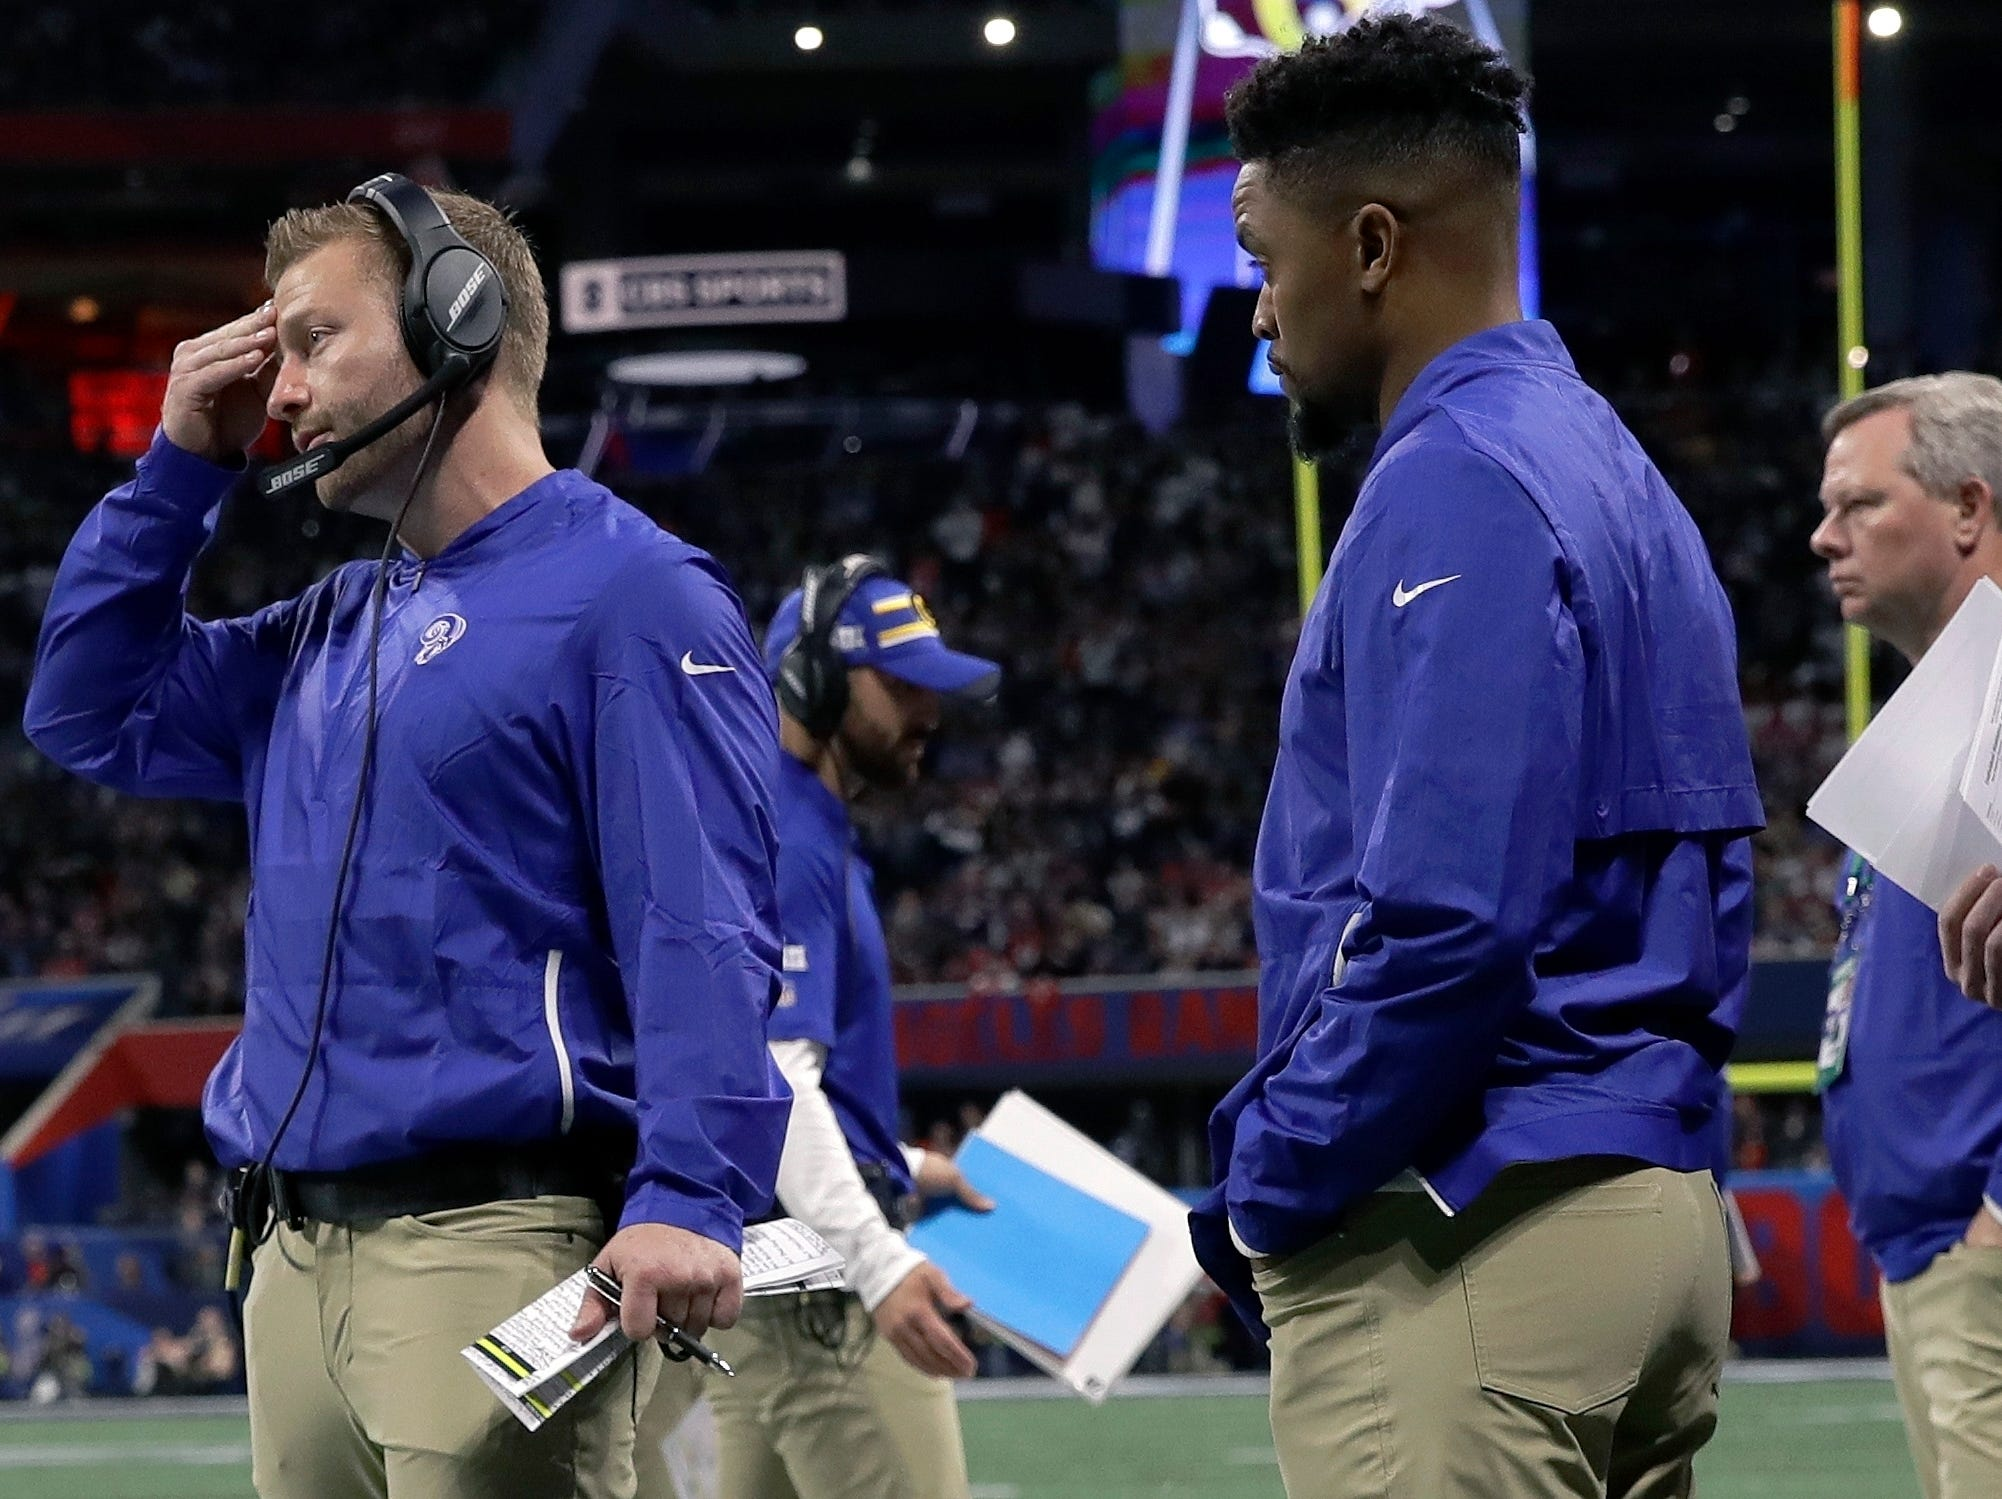 Los Angeles Rams head coach Sean McVay, left, watches from the sideline during the first half.